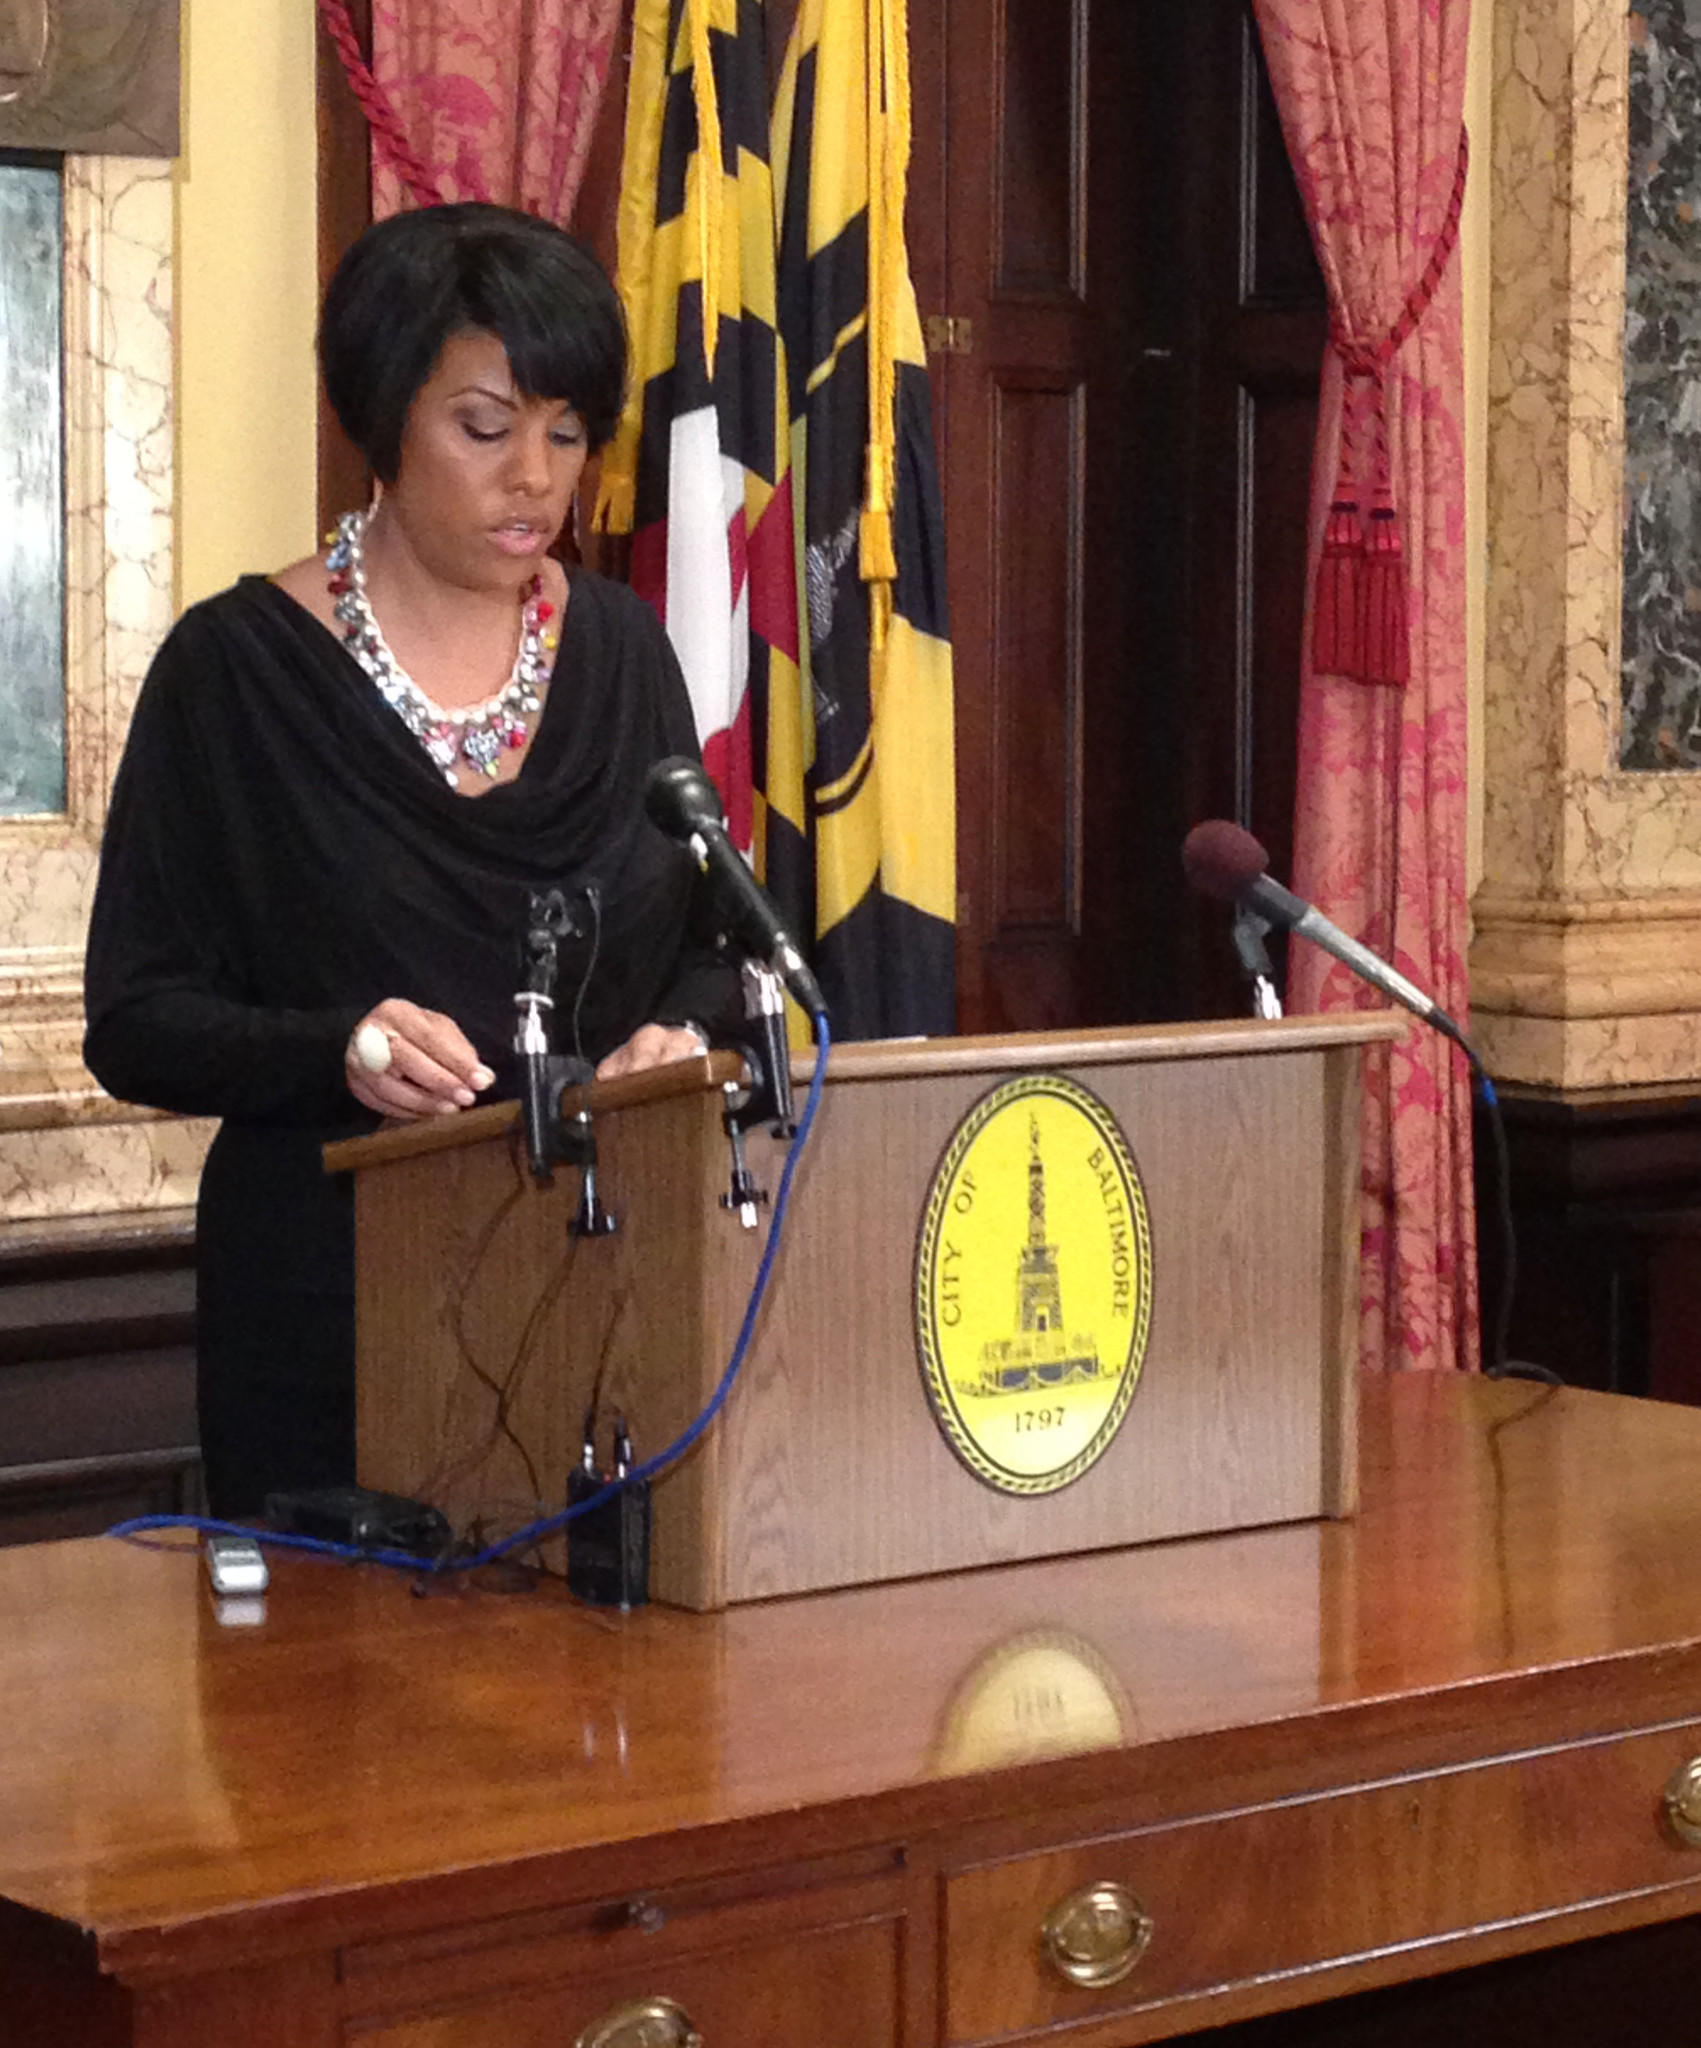 Baltimore Mayor Stephanie Rawlings-Blake is shown in a file photo.